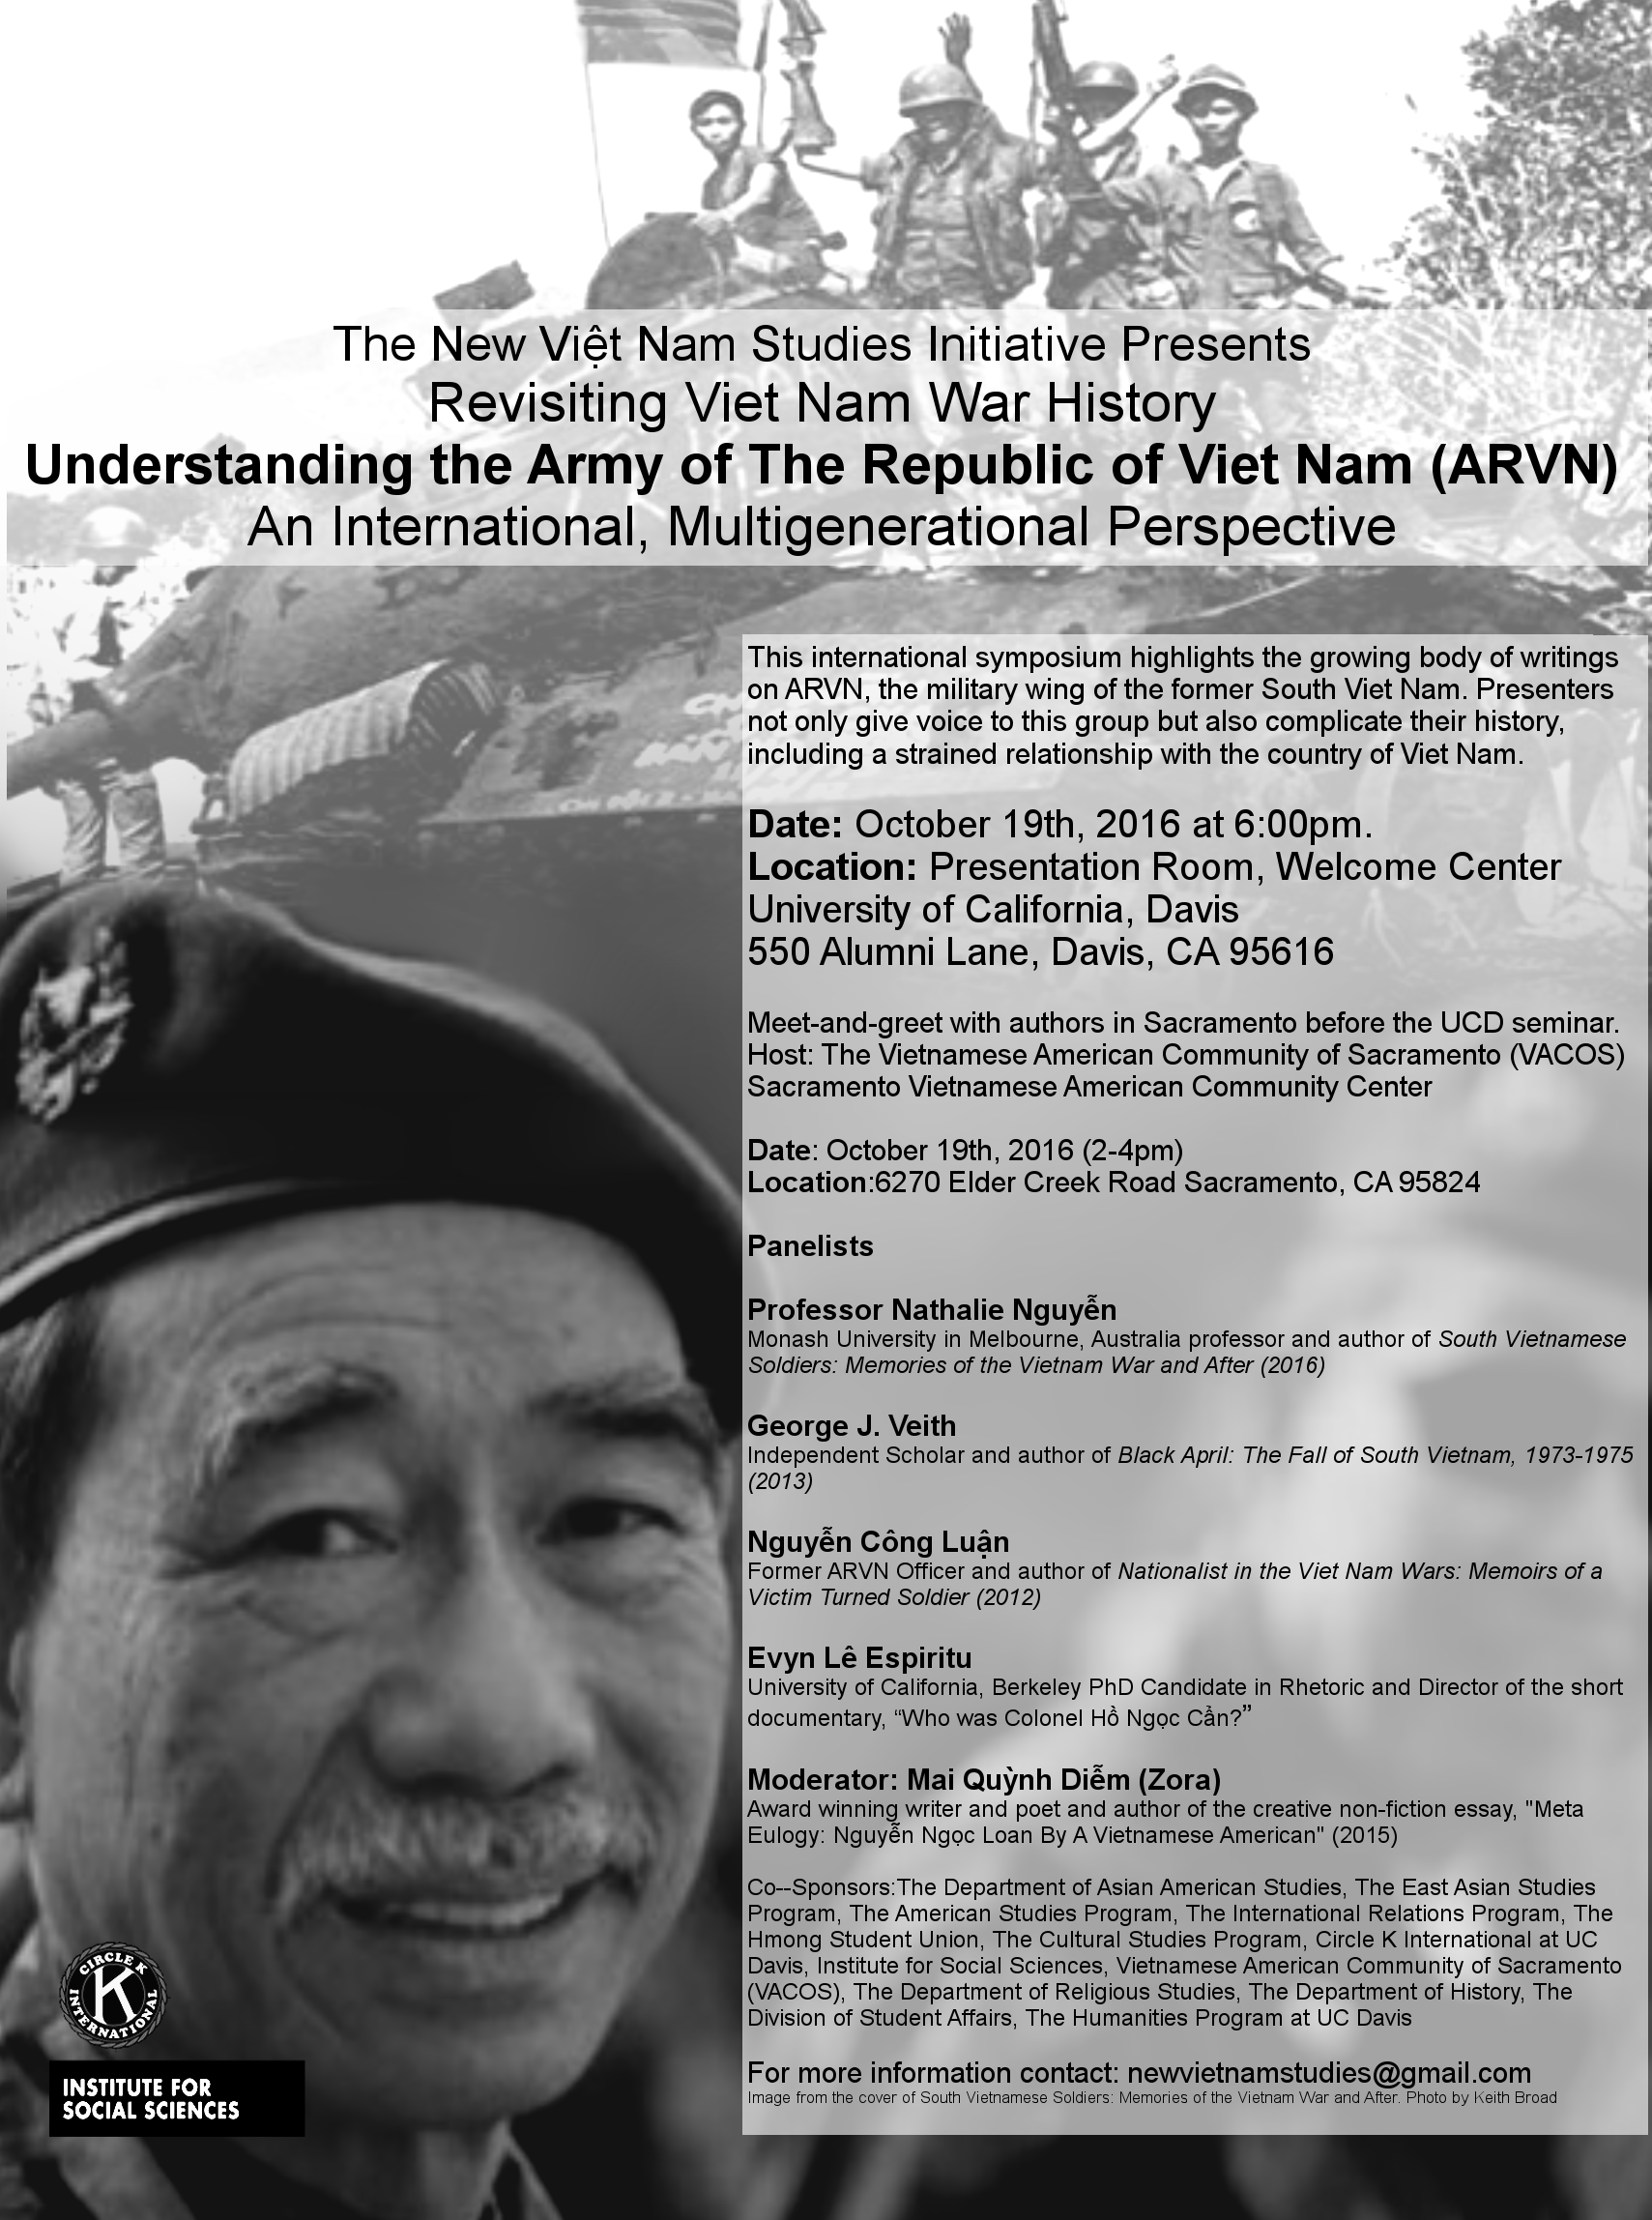 arvn-symposium-flyer-english-version